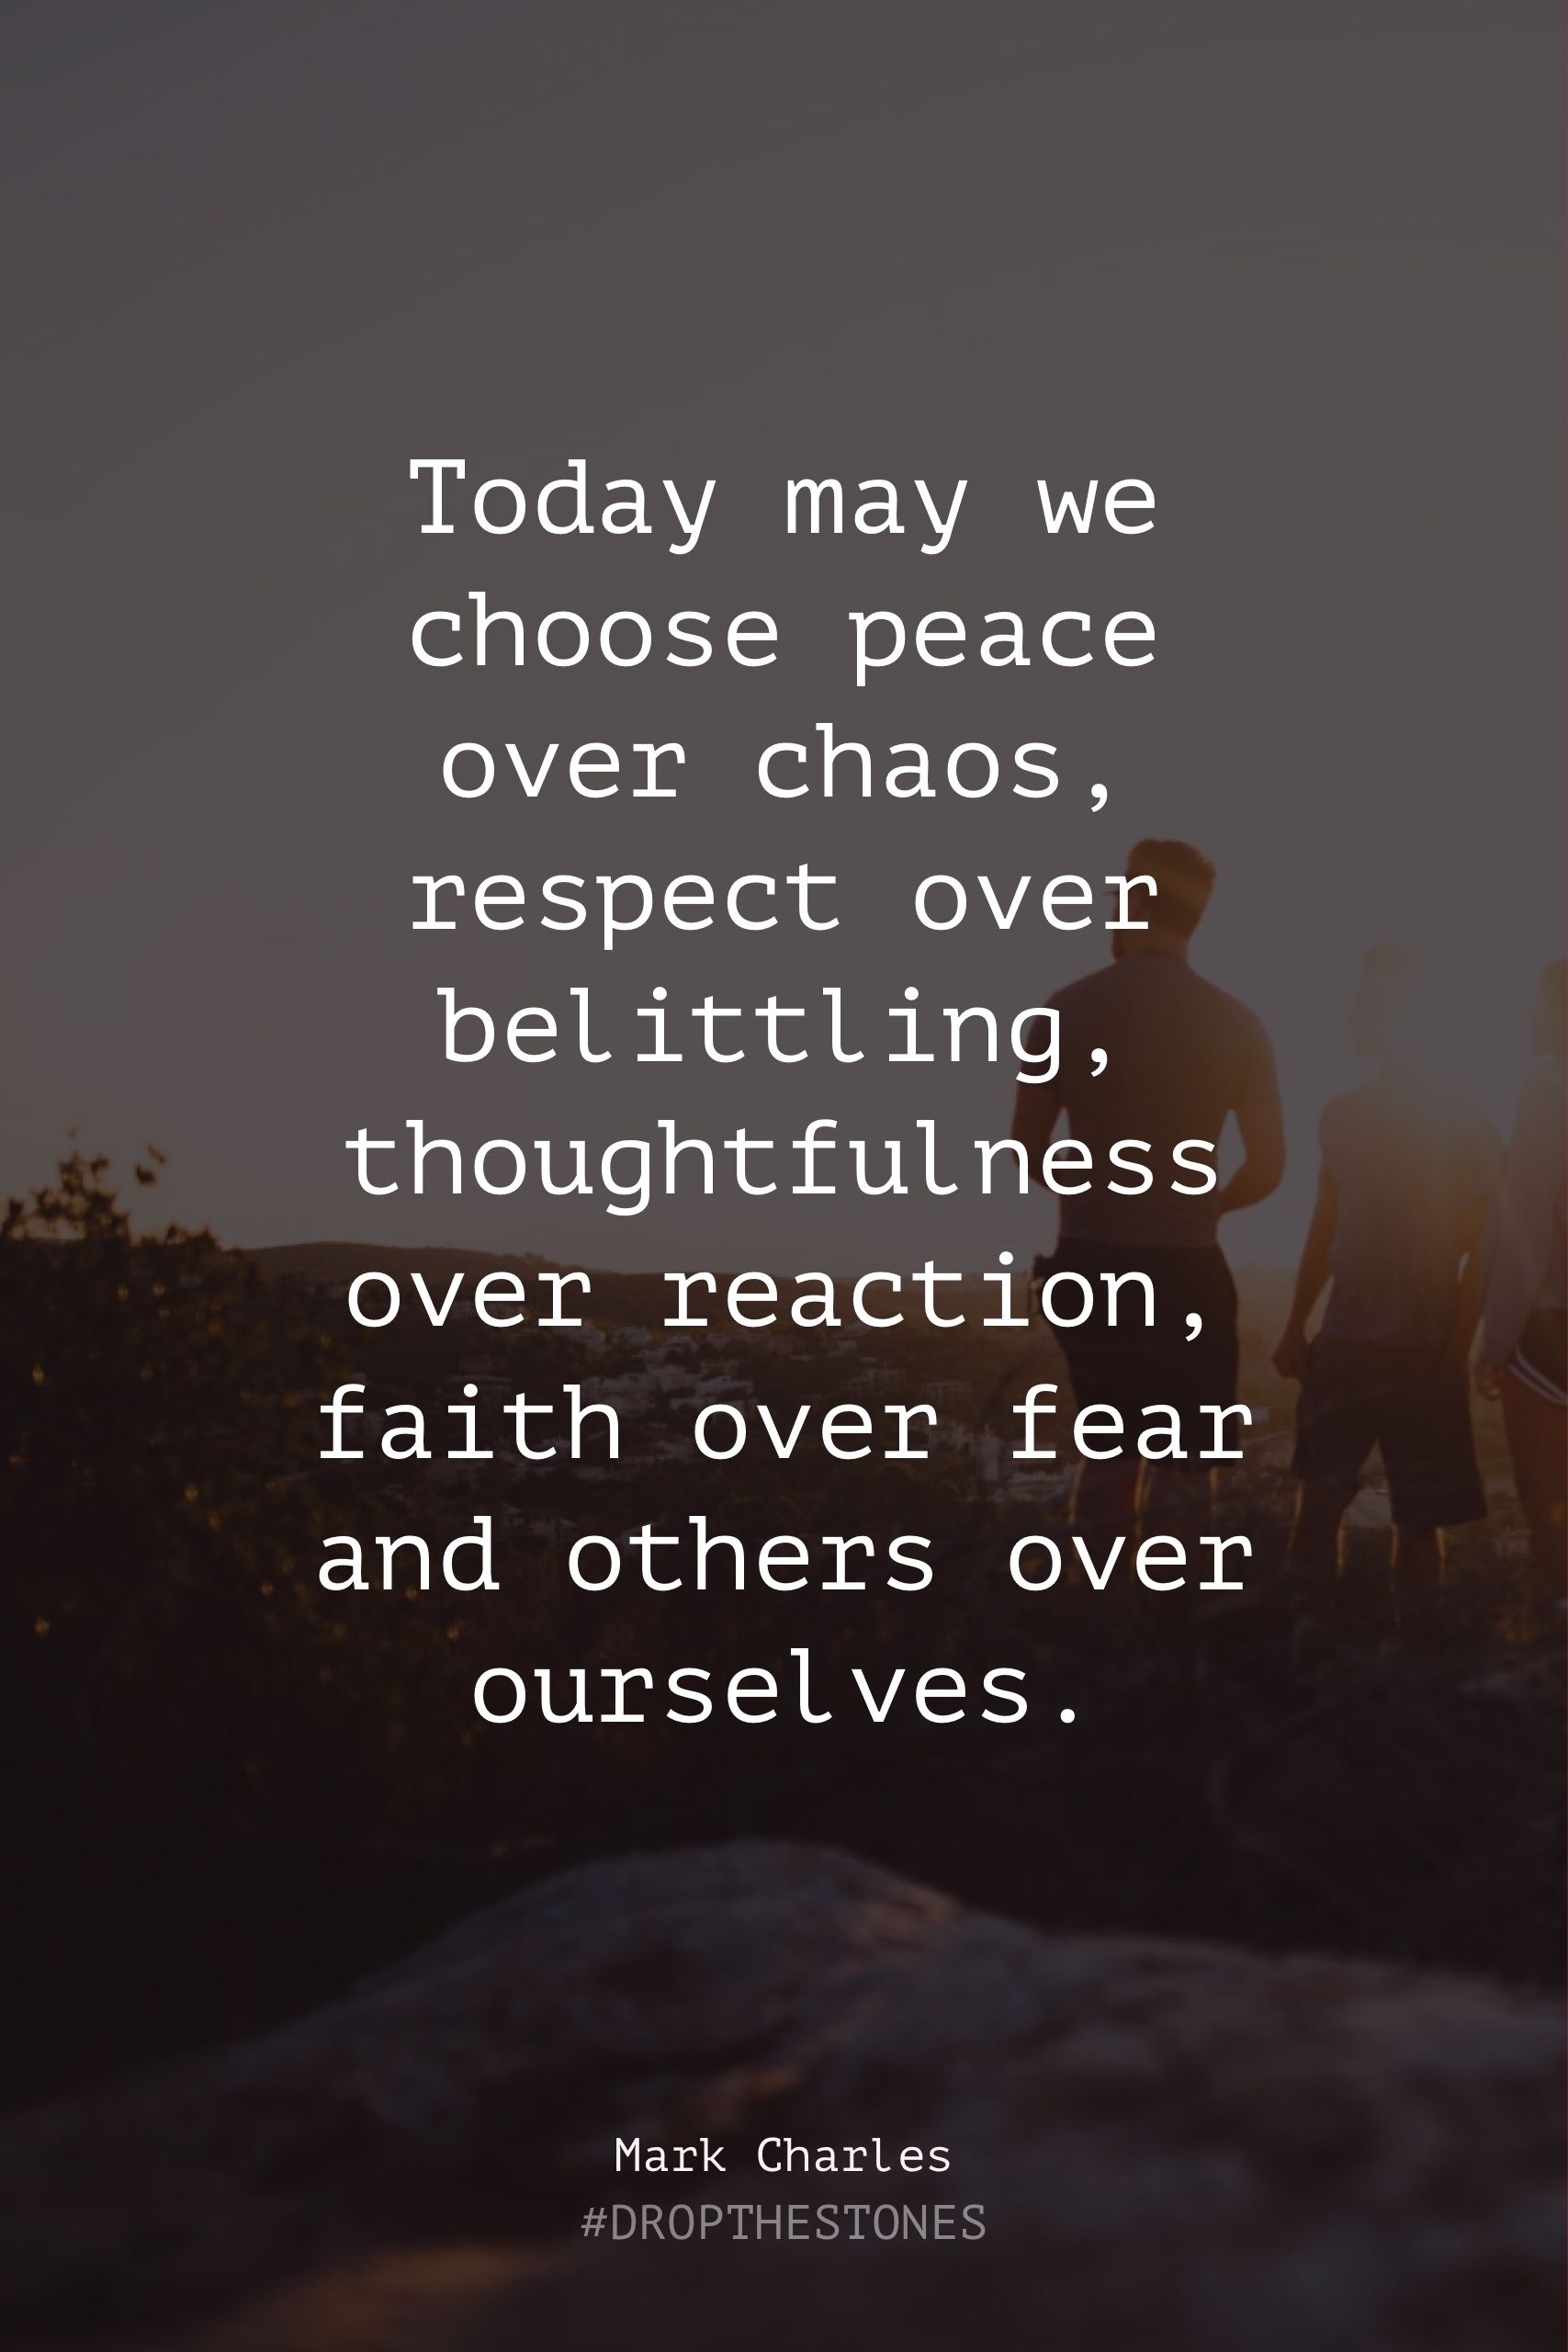 Today may we choose peace over chaos, respect over belittling, thoughtfulness over reaction, faith over fear & others over ourselves.